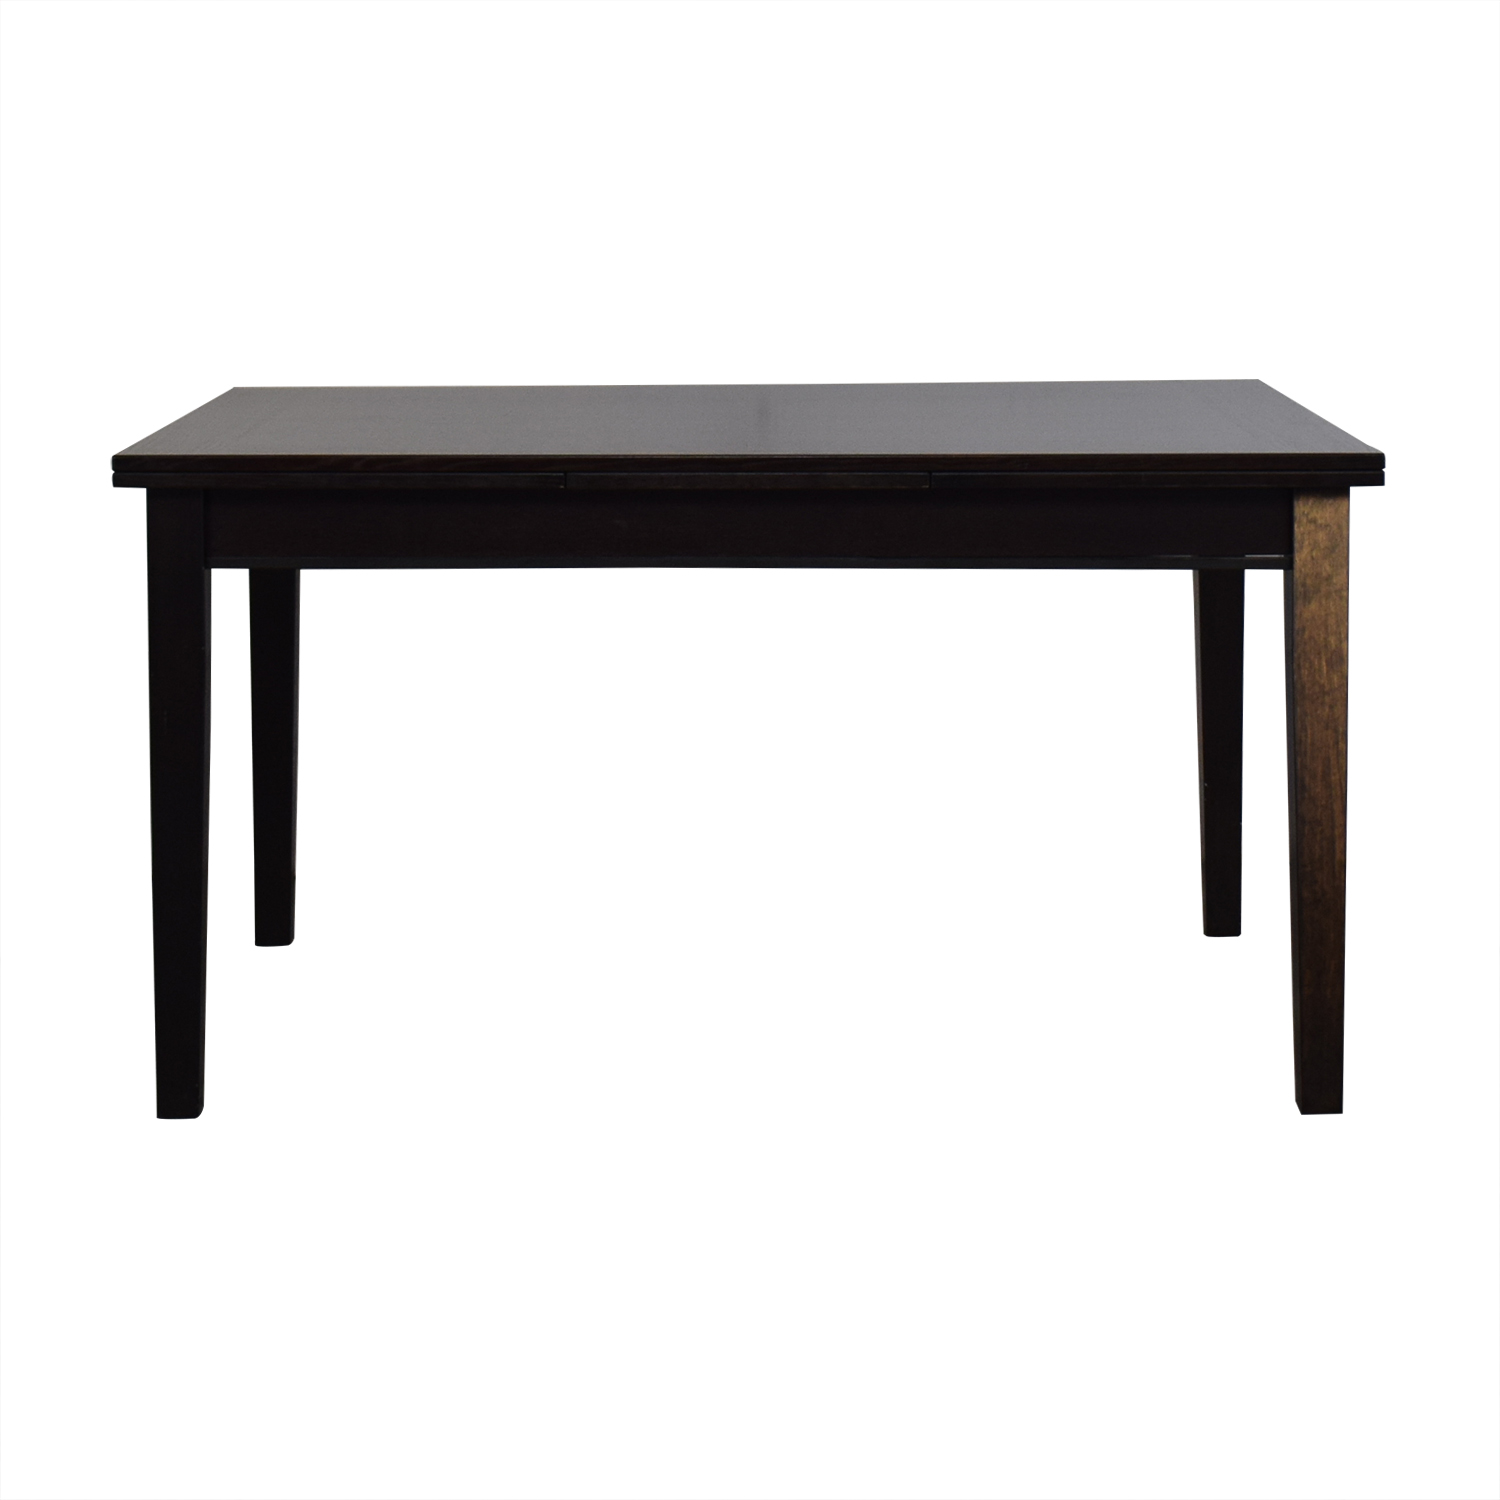 Crate & Barrel Crate & Barrel Danish Extension Rectangular Dining Table discount